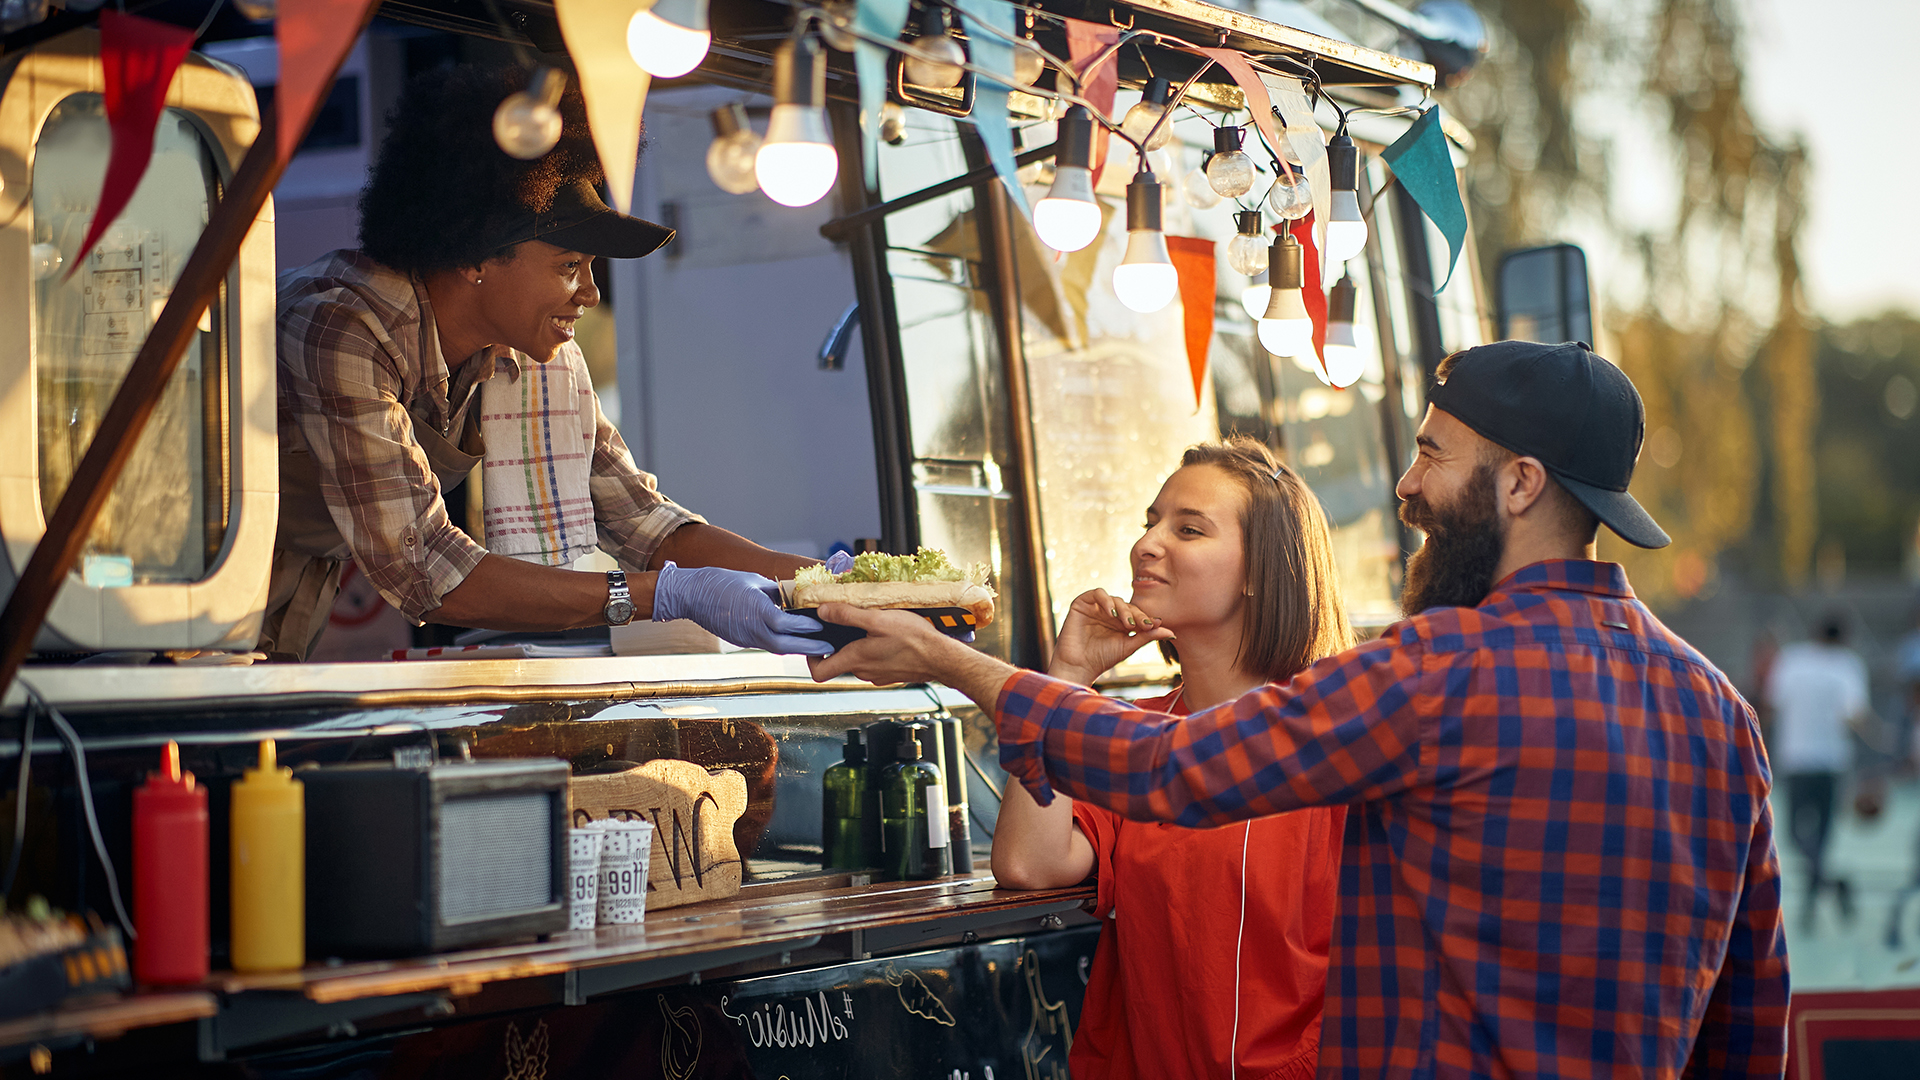 Couple buying from a food truck